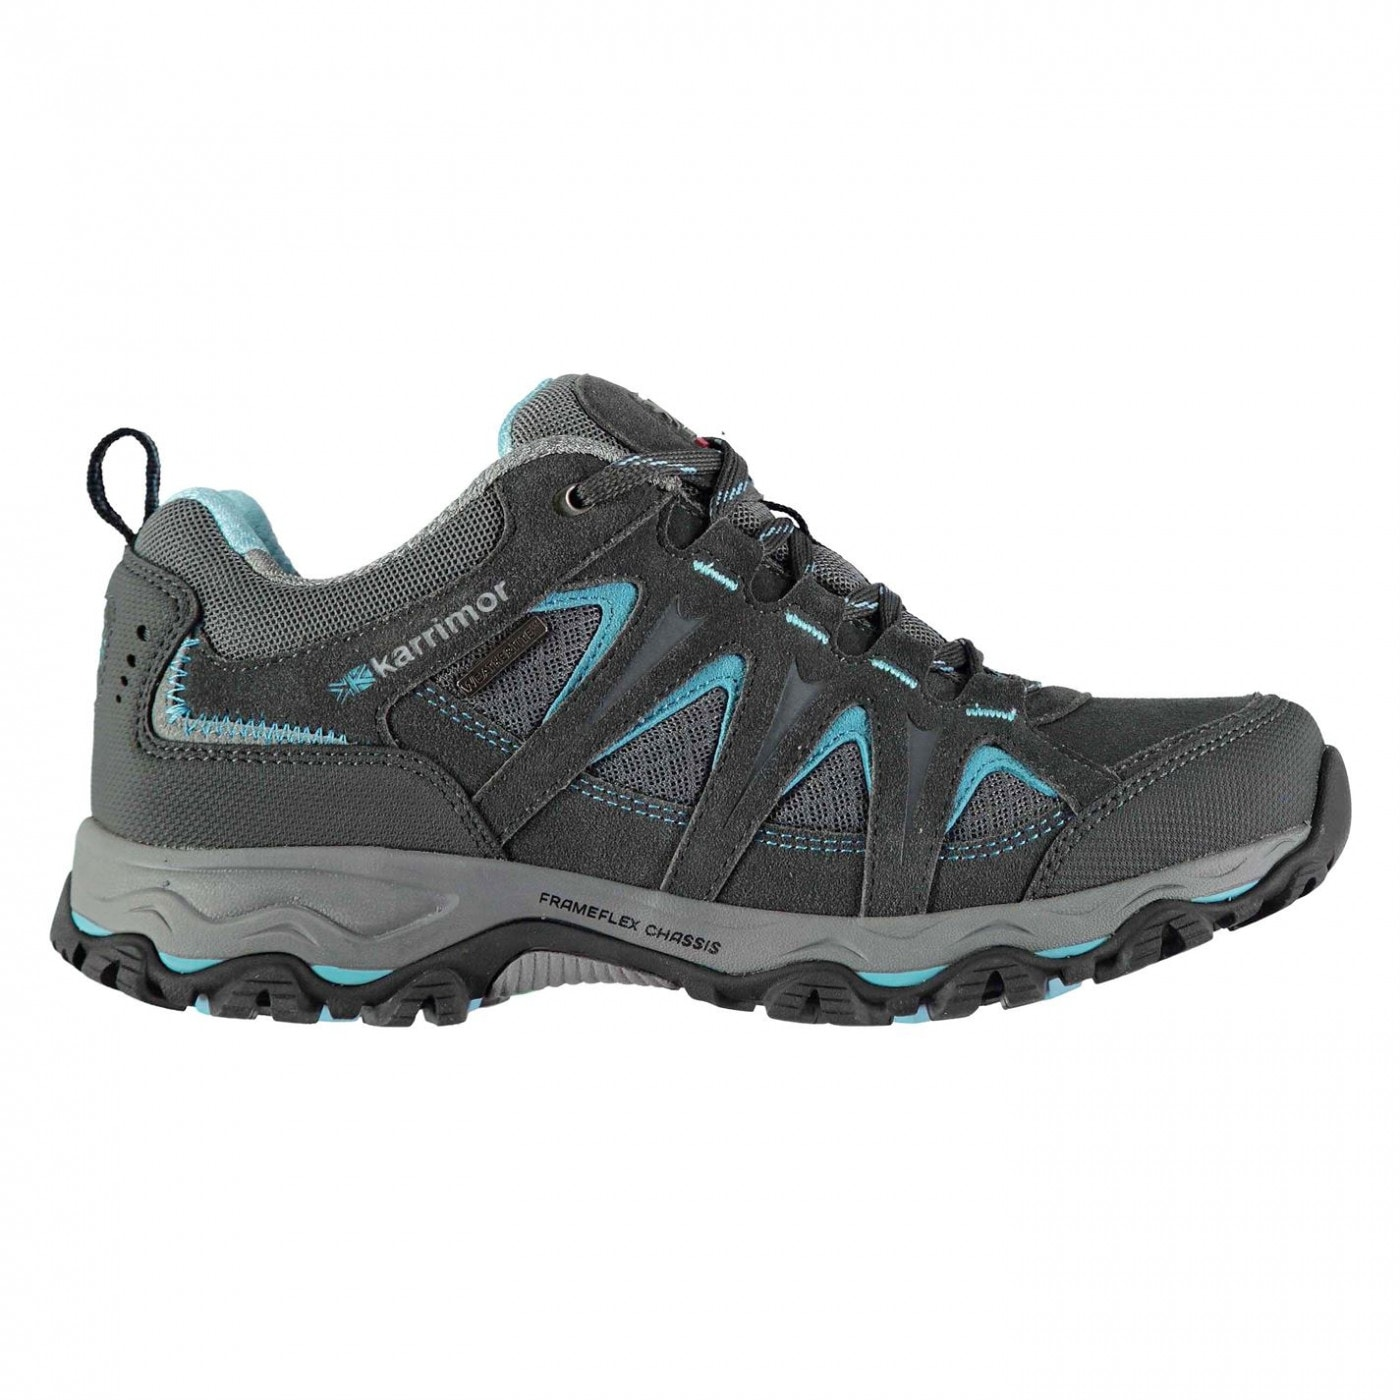 Women's walking shoes Karrimor Mount Low